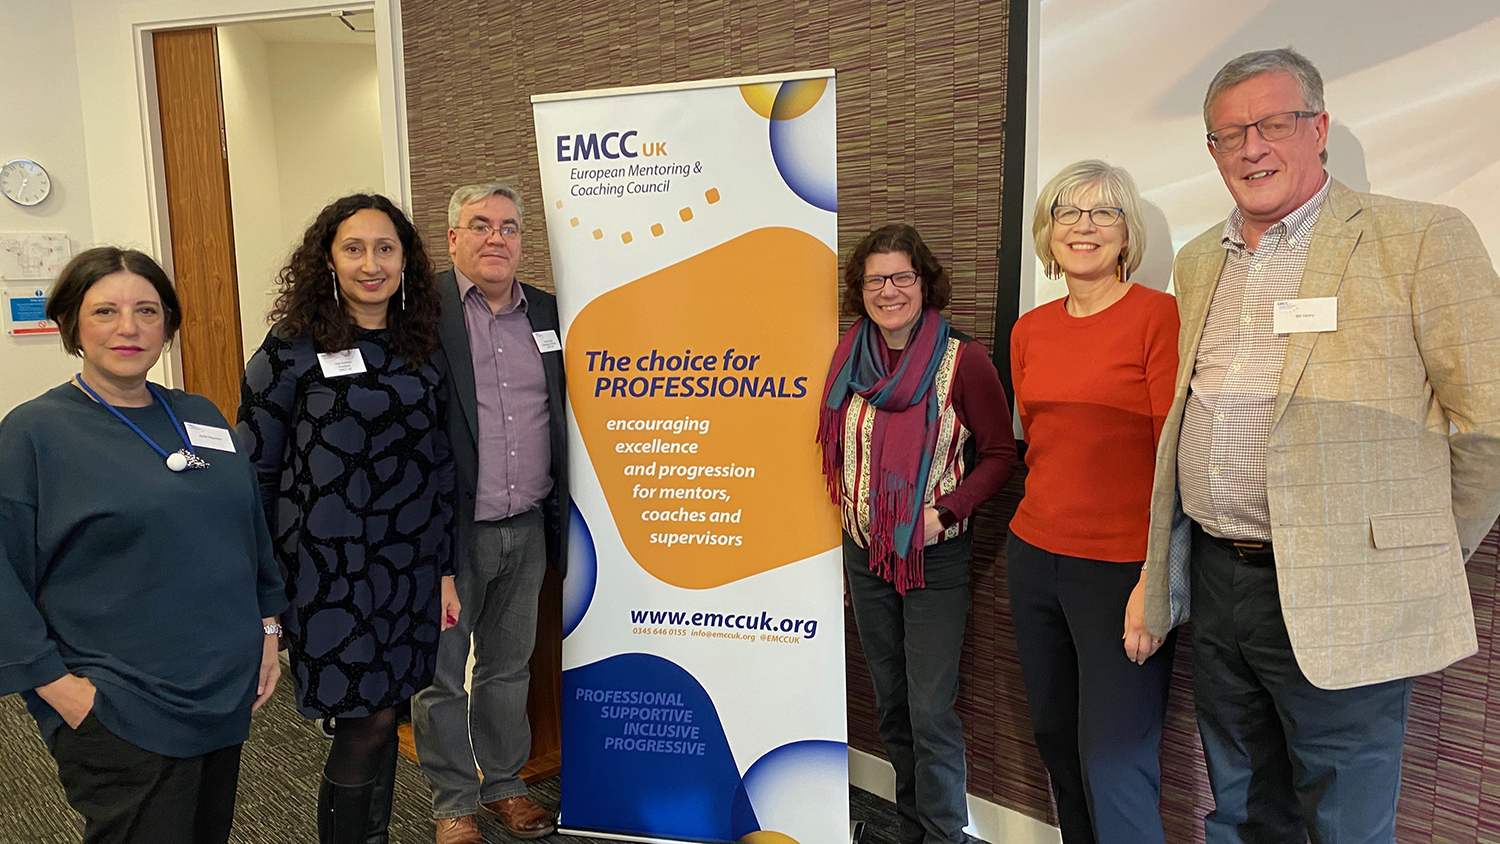 Speakers at the EMCC UK Conference in January 2020